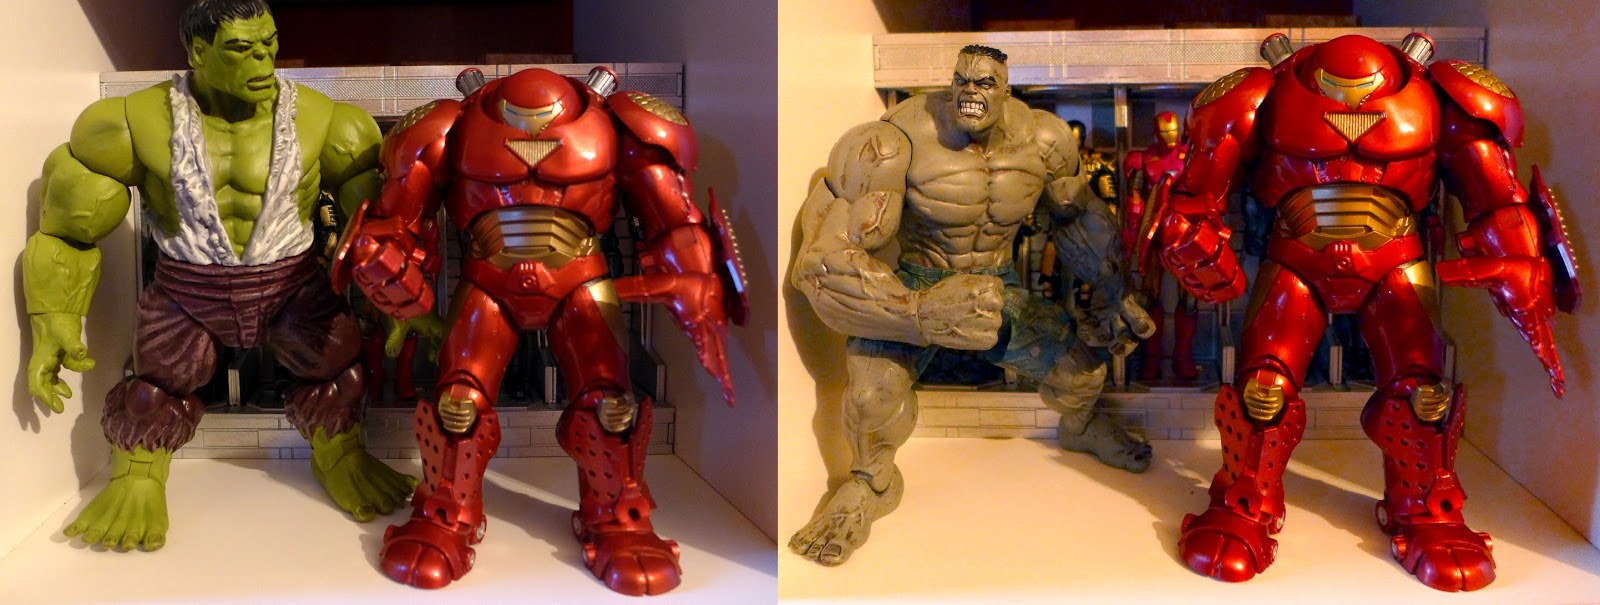 Customtecture: Marvel Select Hulkbuster Review